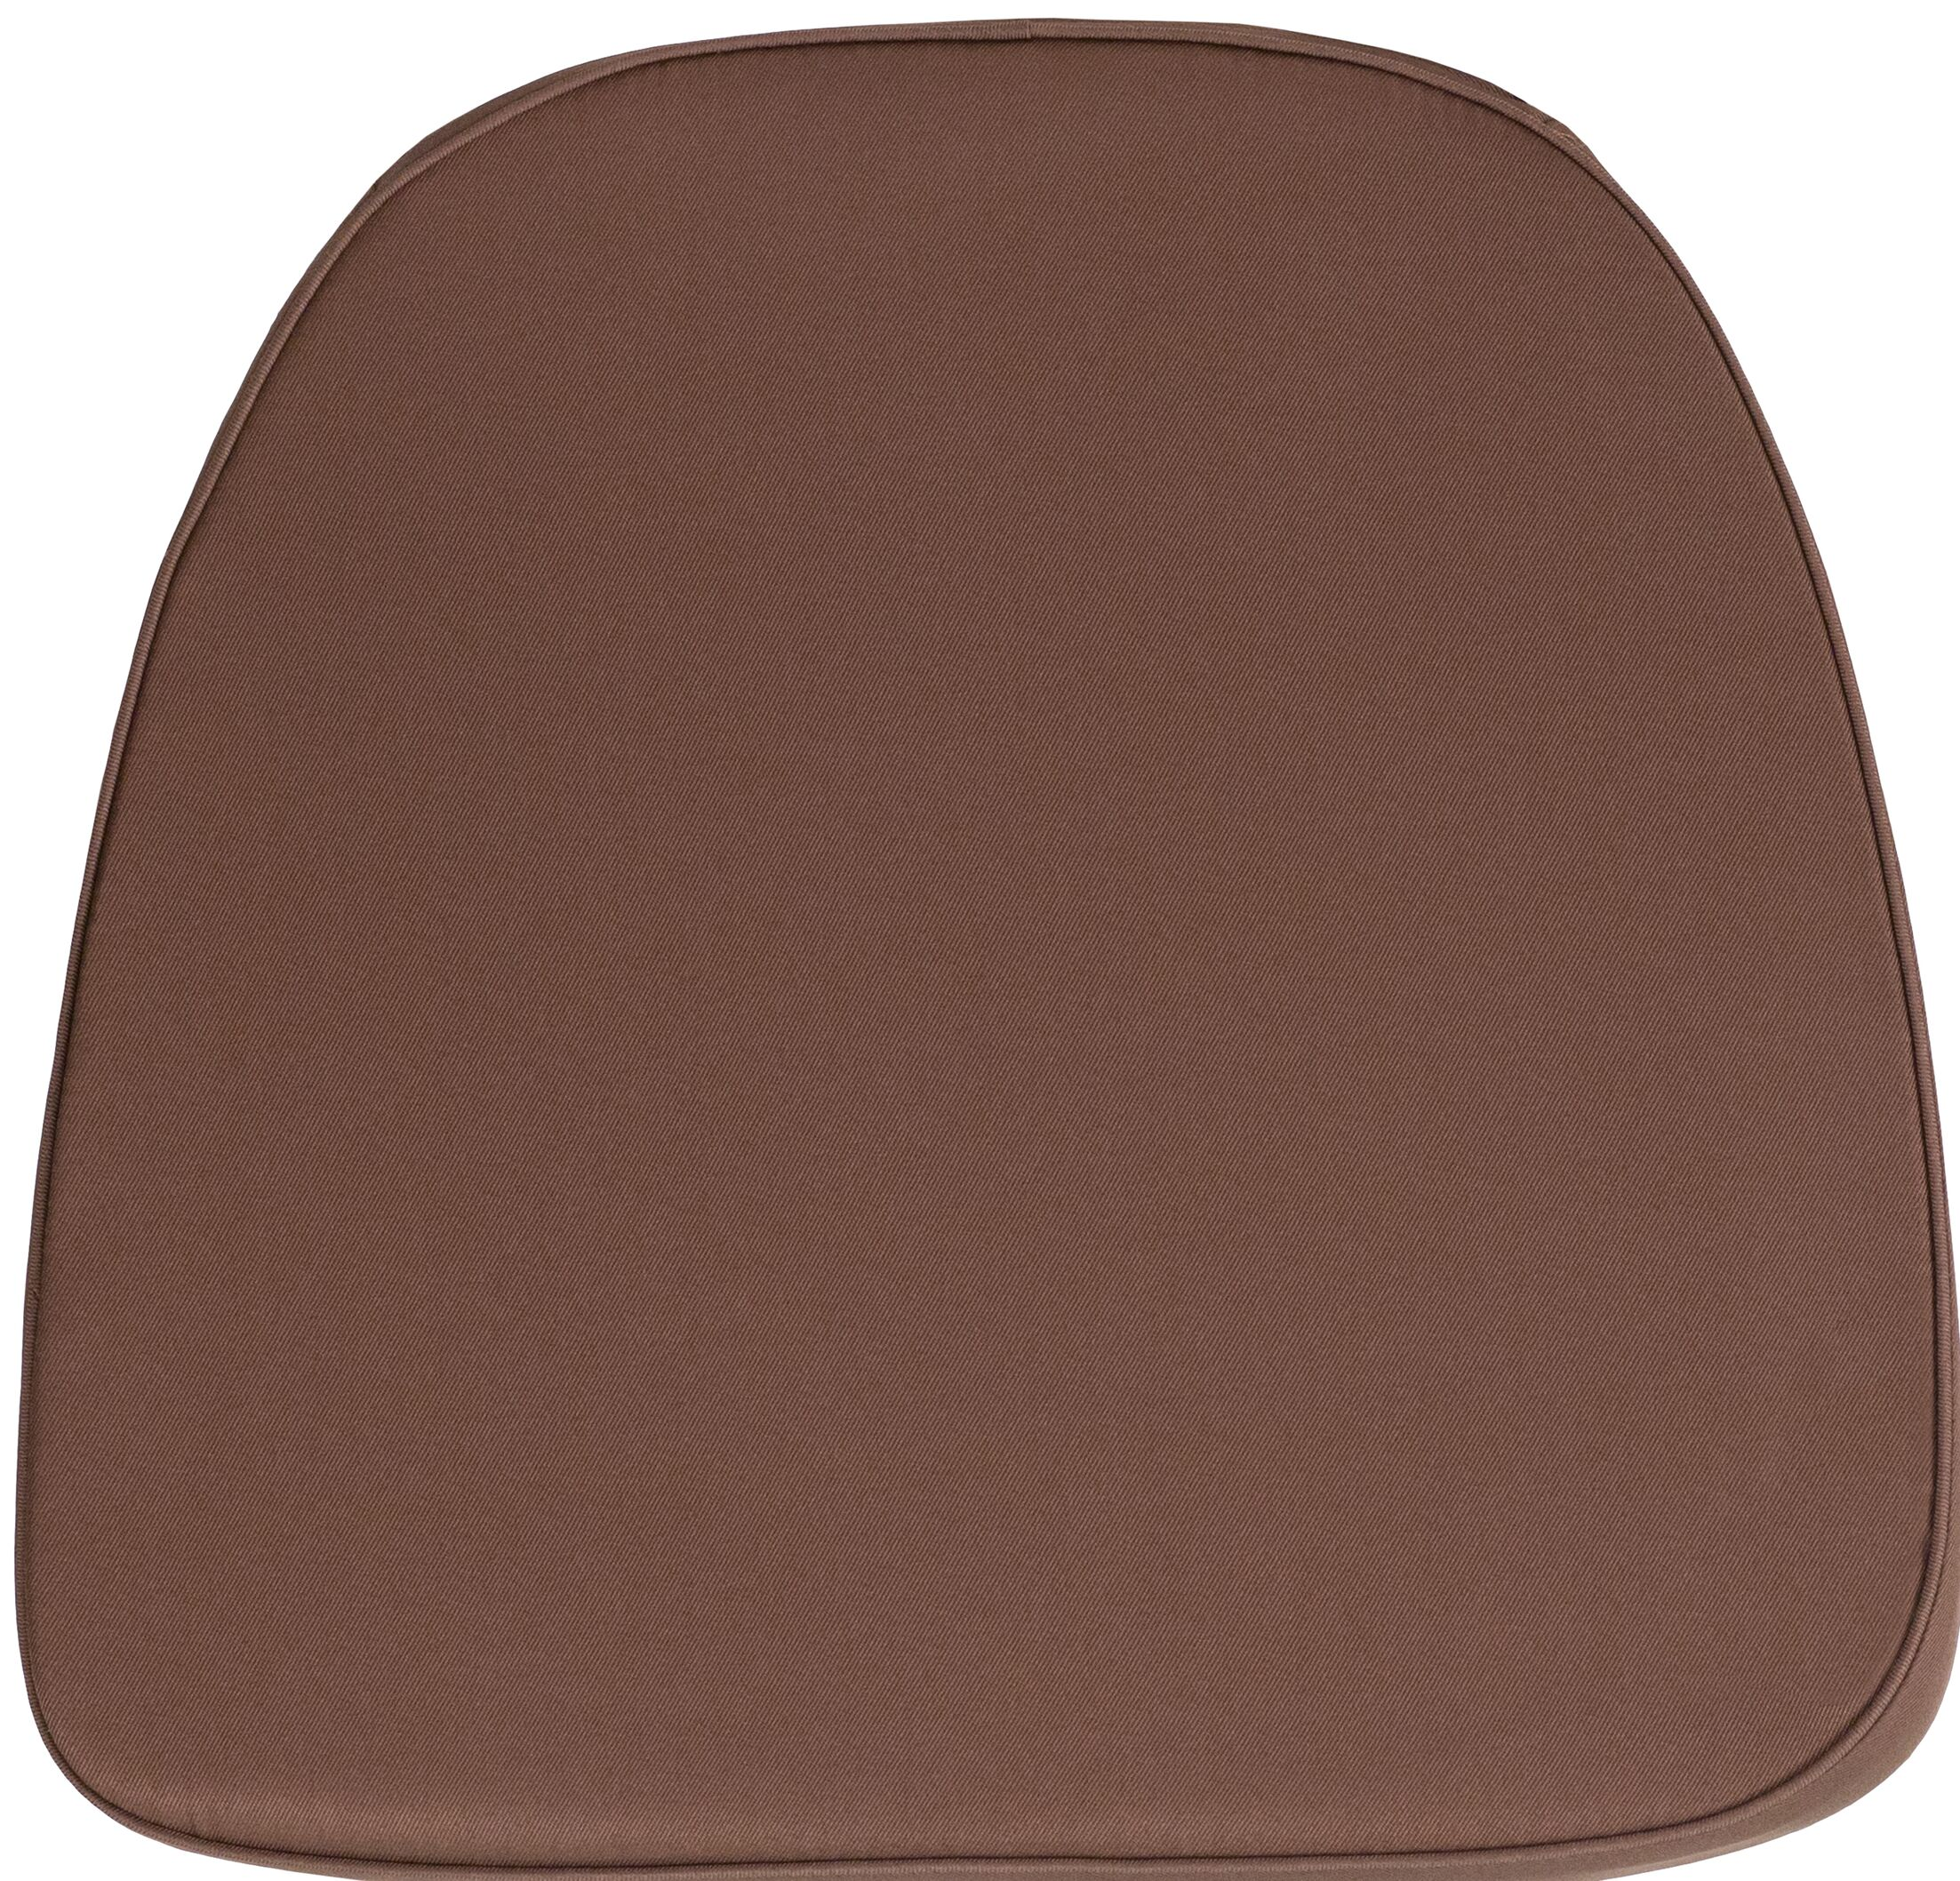 Indoor Dining Chair Cushion Fabric: Brown